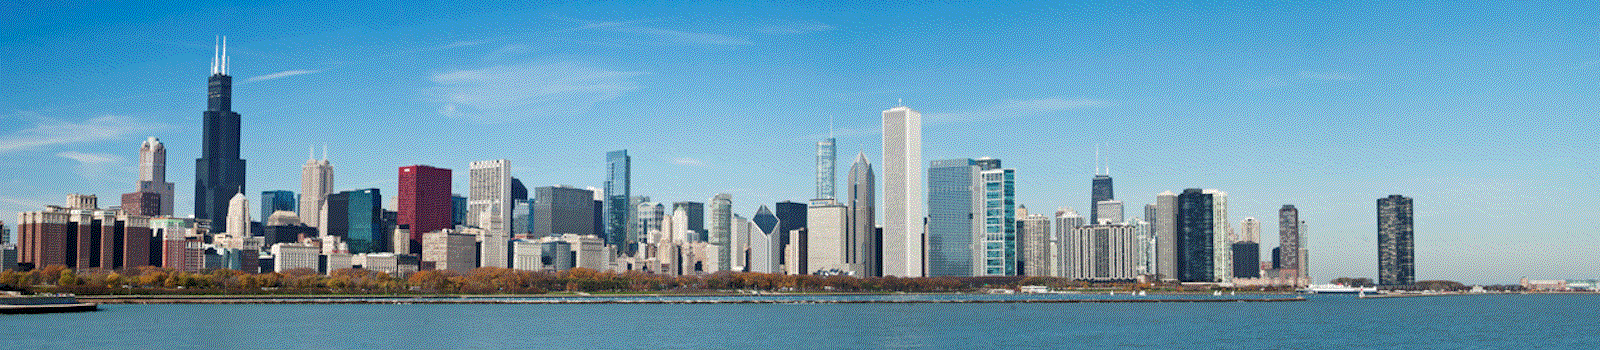 Kyle in Chicago.  Real Estate.  Technology.  All things Chicago.